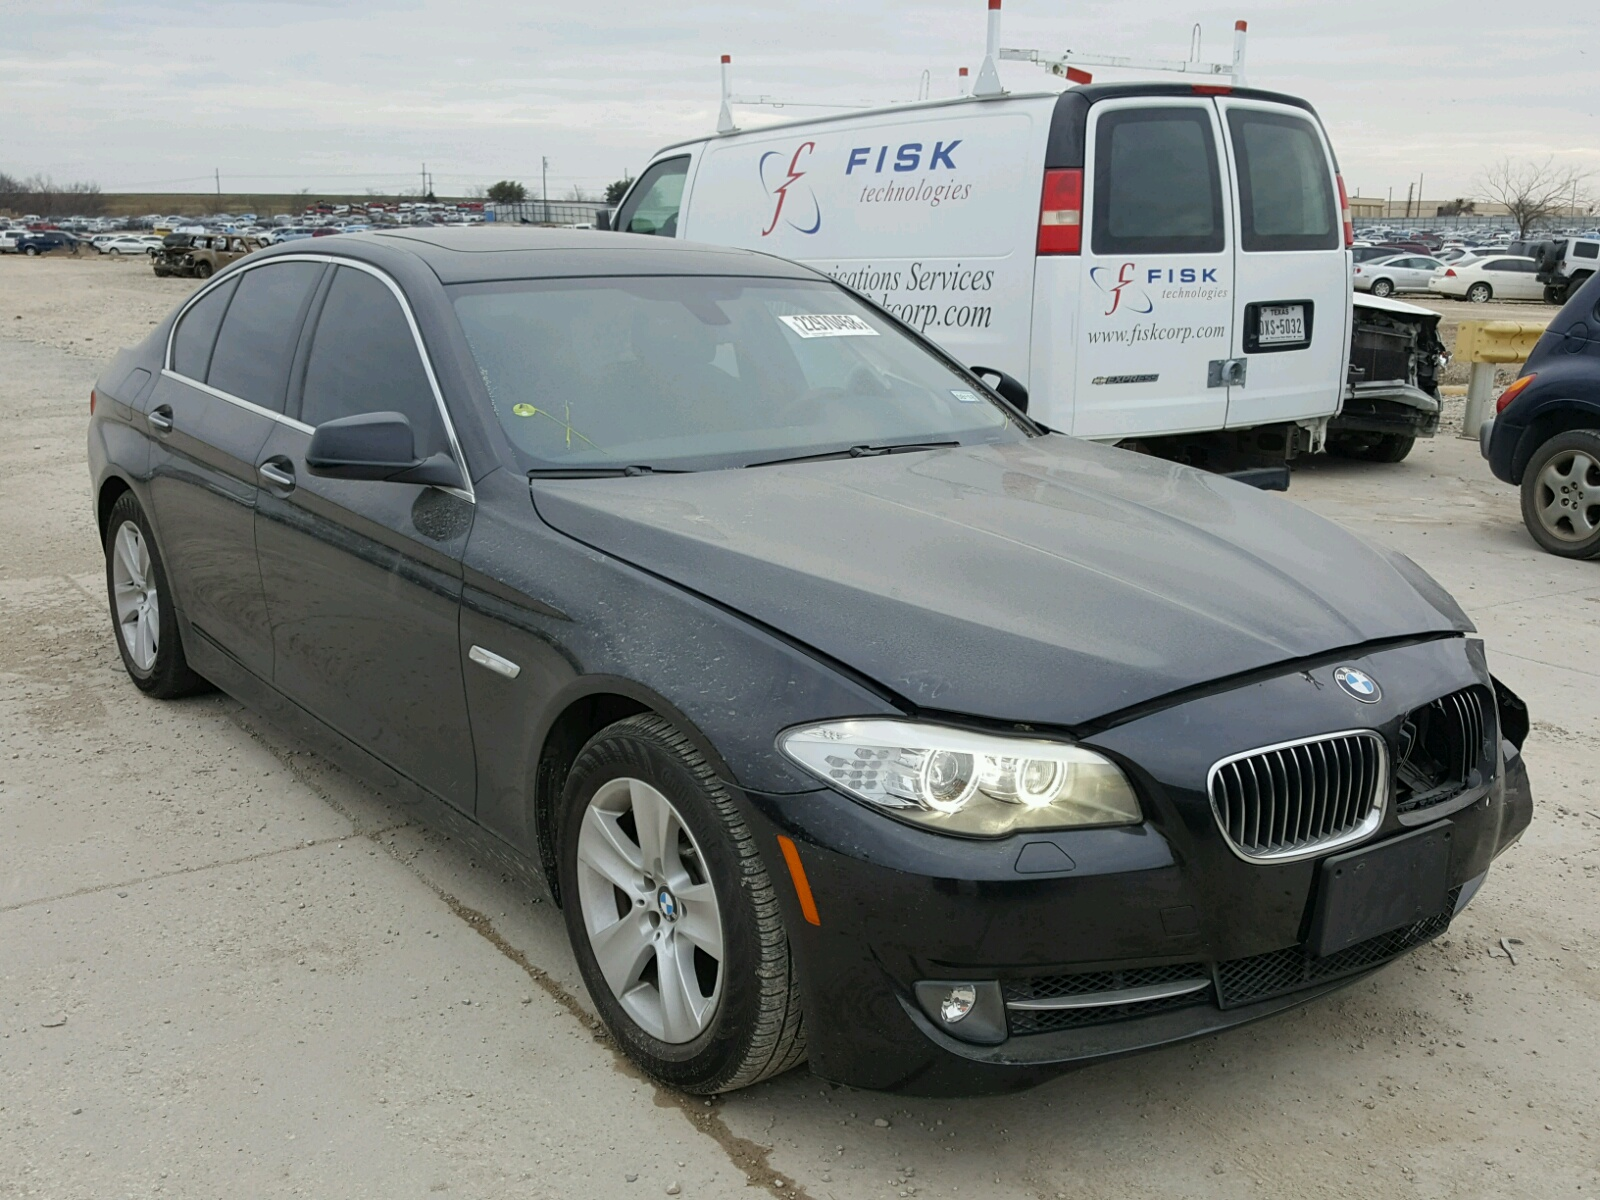 Auto Auction Ended On Vin Wbafr7c58dc822272 2013 Bmw 535